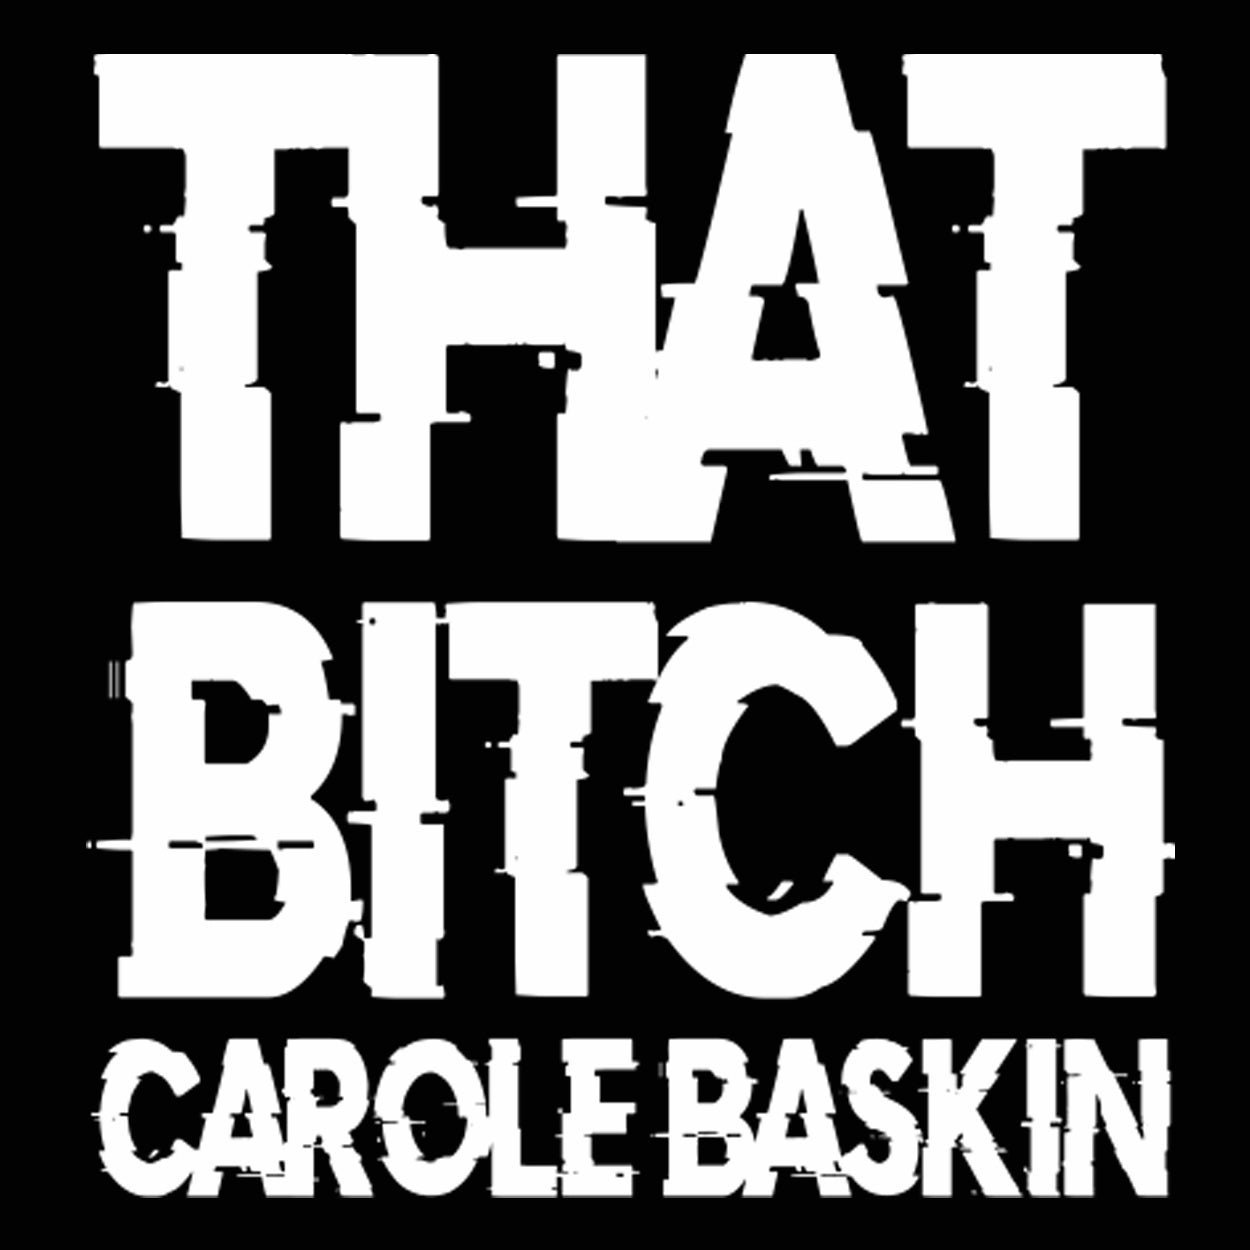 That Bitch Carole Baskin - DonkeyTees